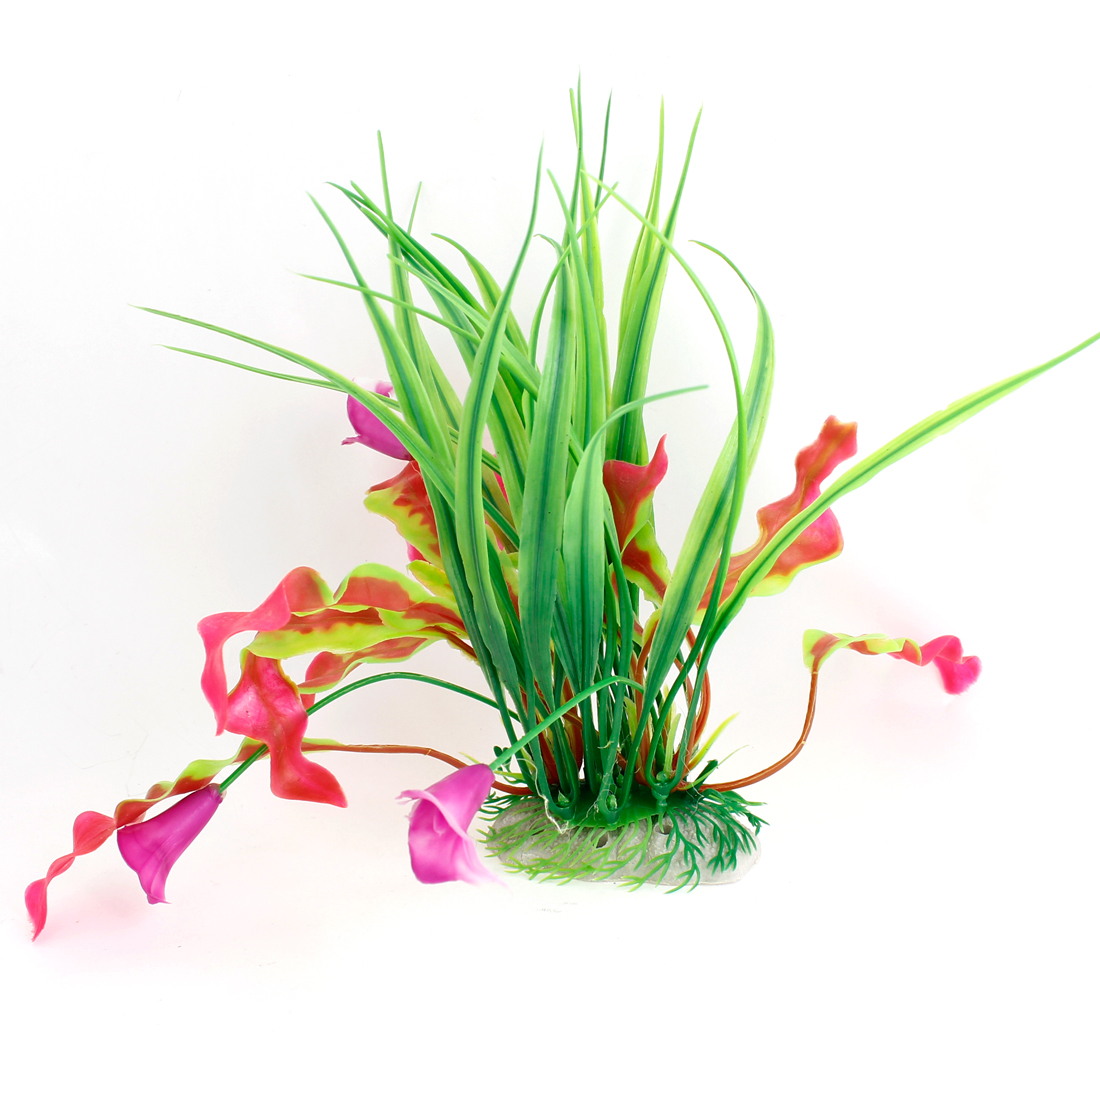 Fish Tank Flowers Ornament Plastic Underwater Weeds Plant Green Magenta